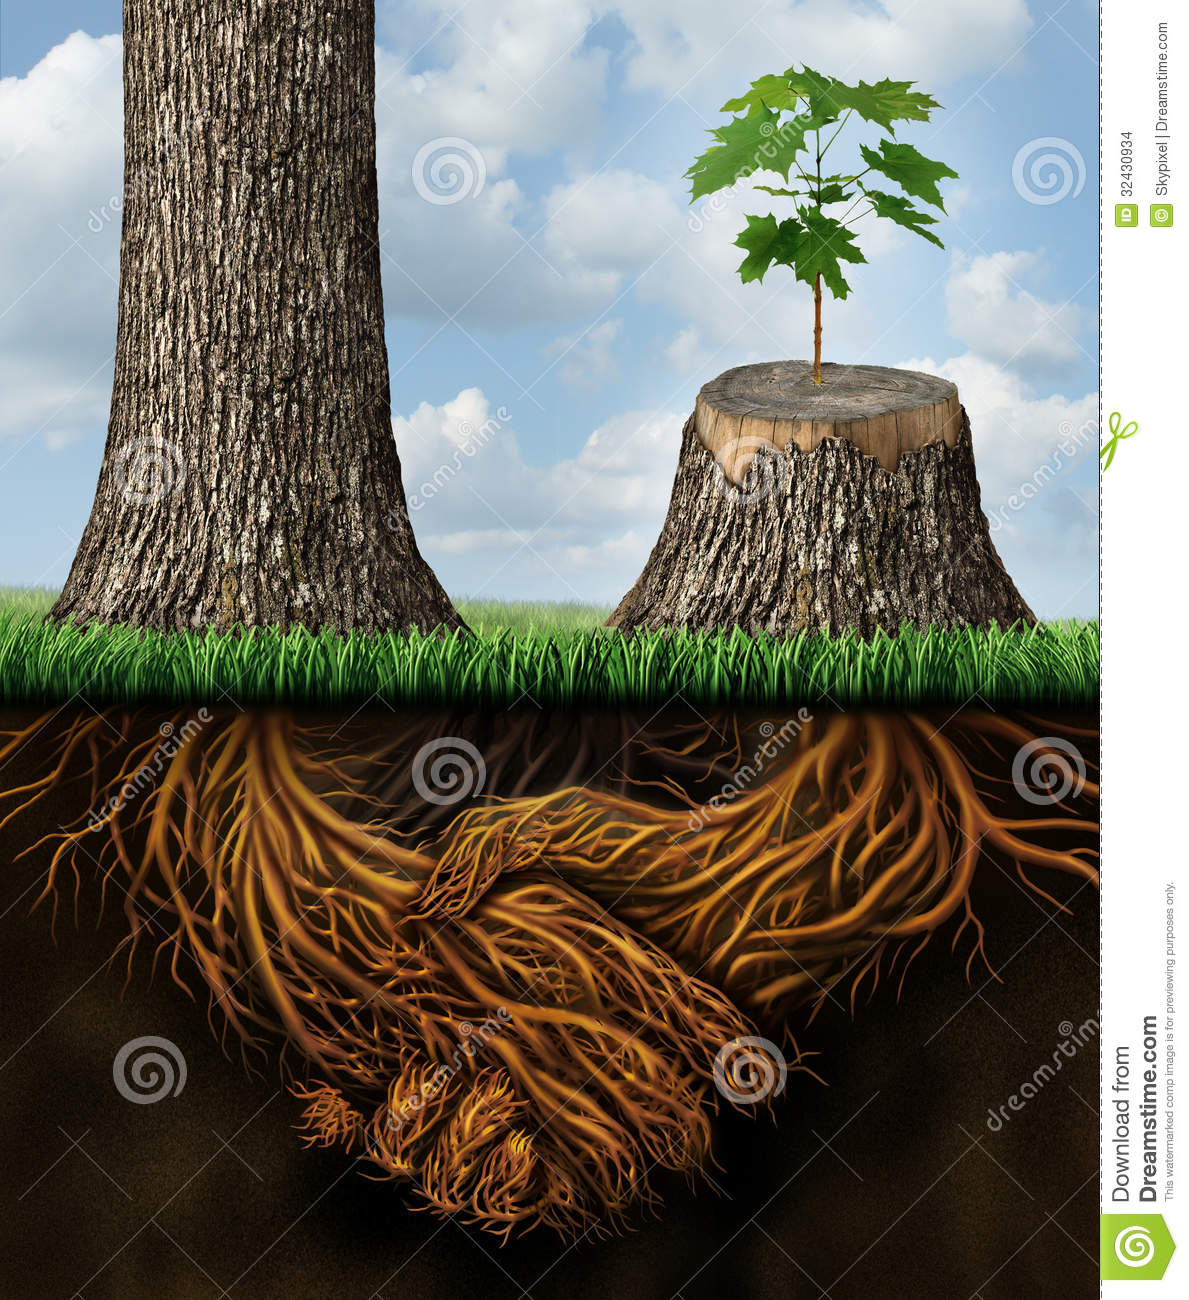 Business help stock images image 32430934 for Tall tree stump ideas